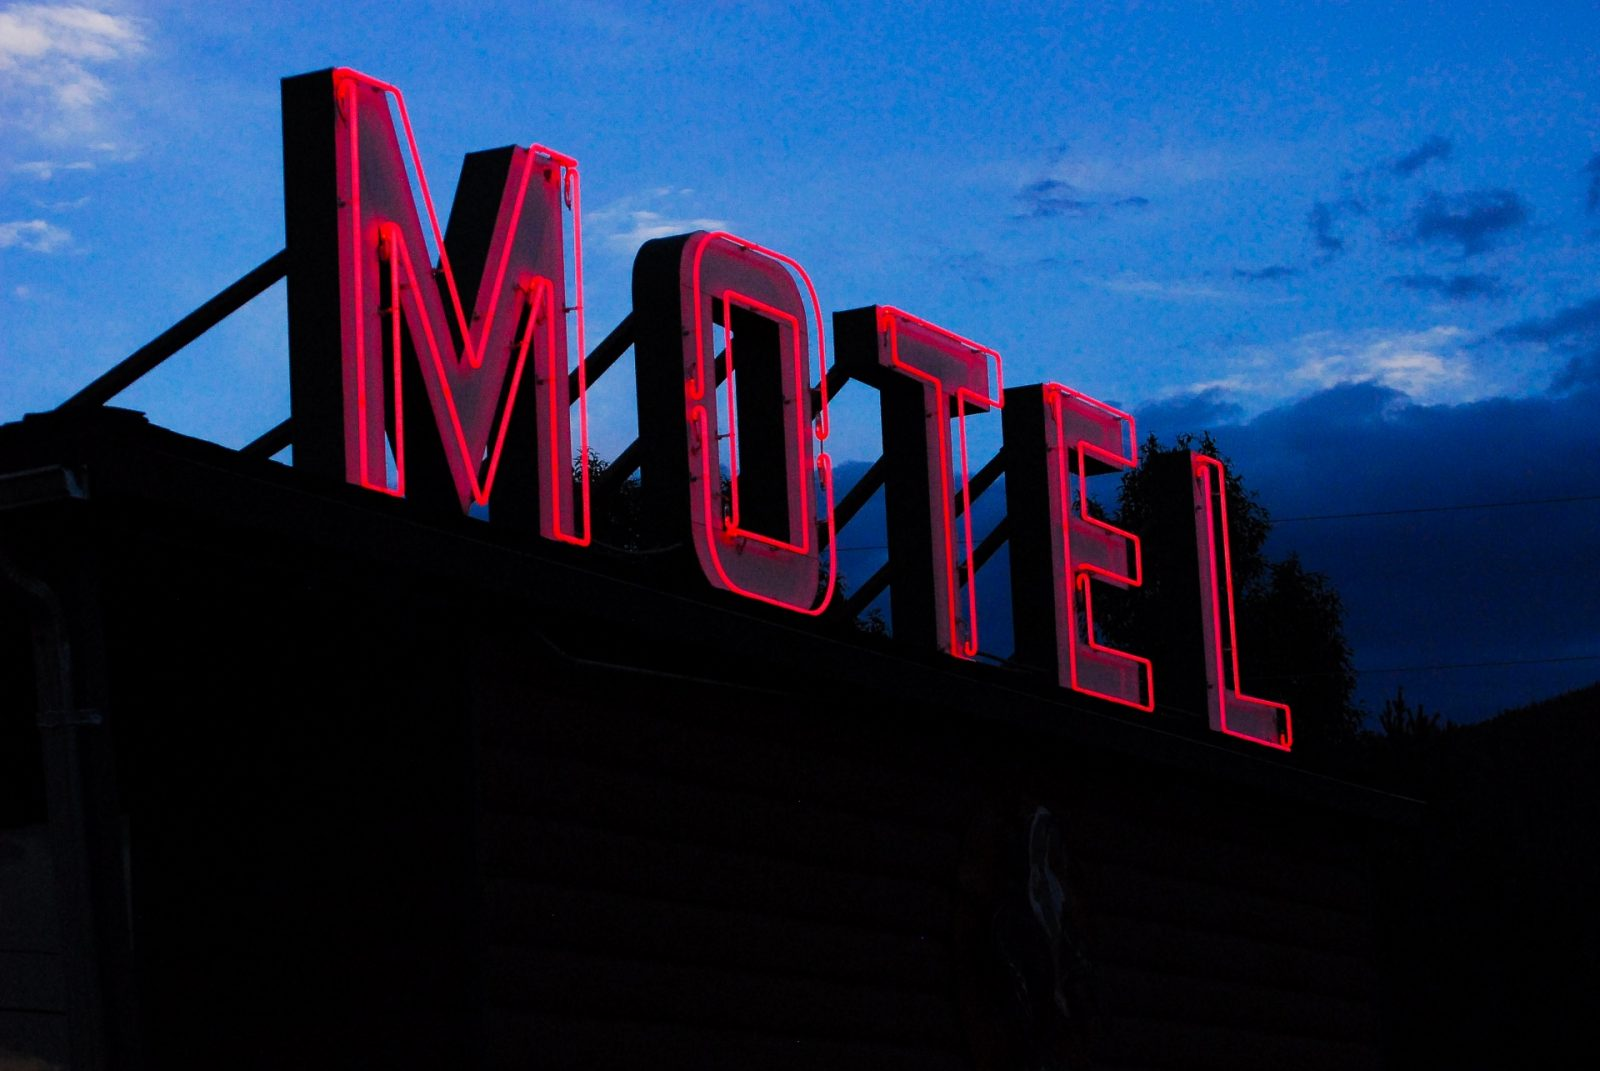 Hotel owners say 4% hotel tax too high